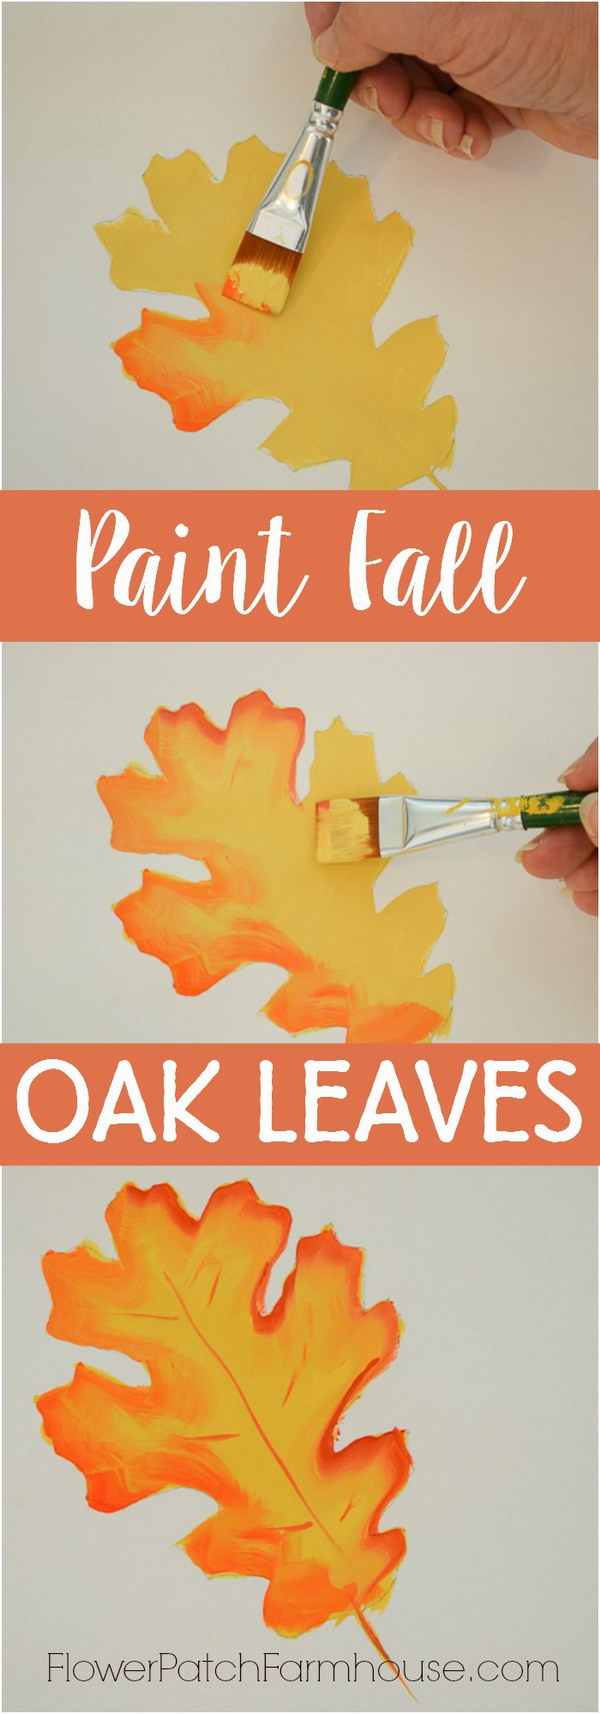 Paint Fall Oak Leaves.